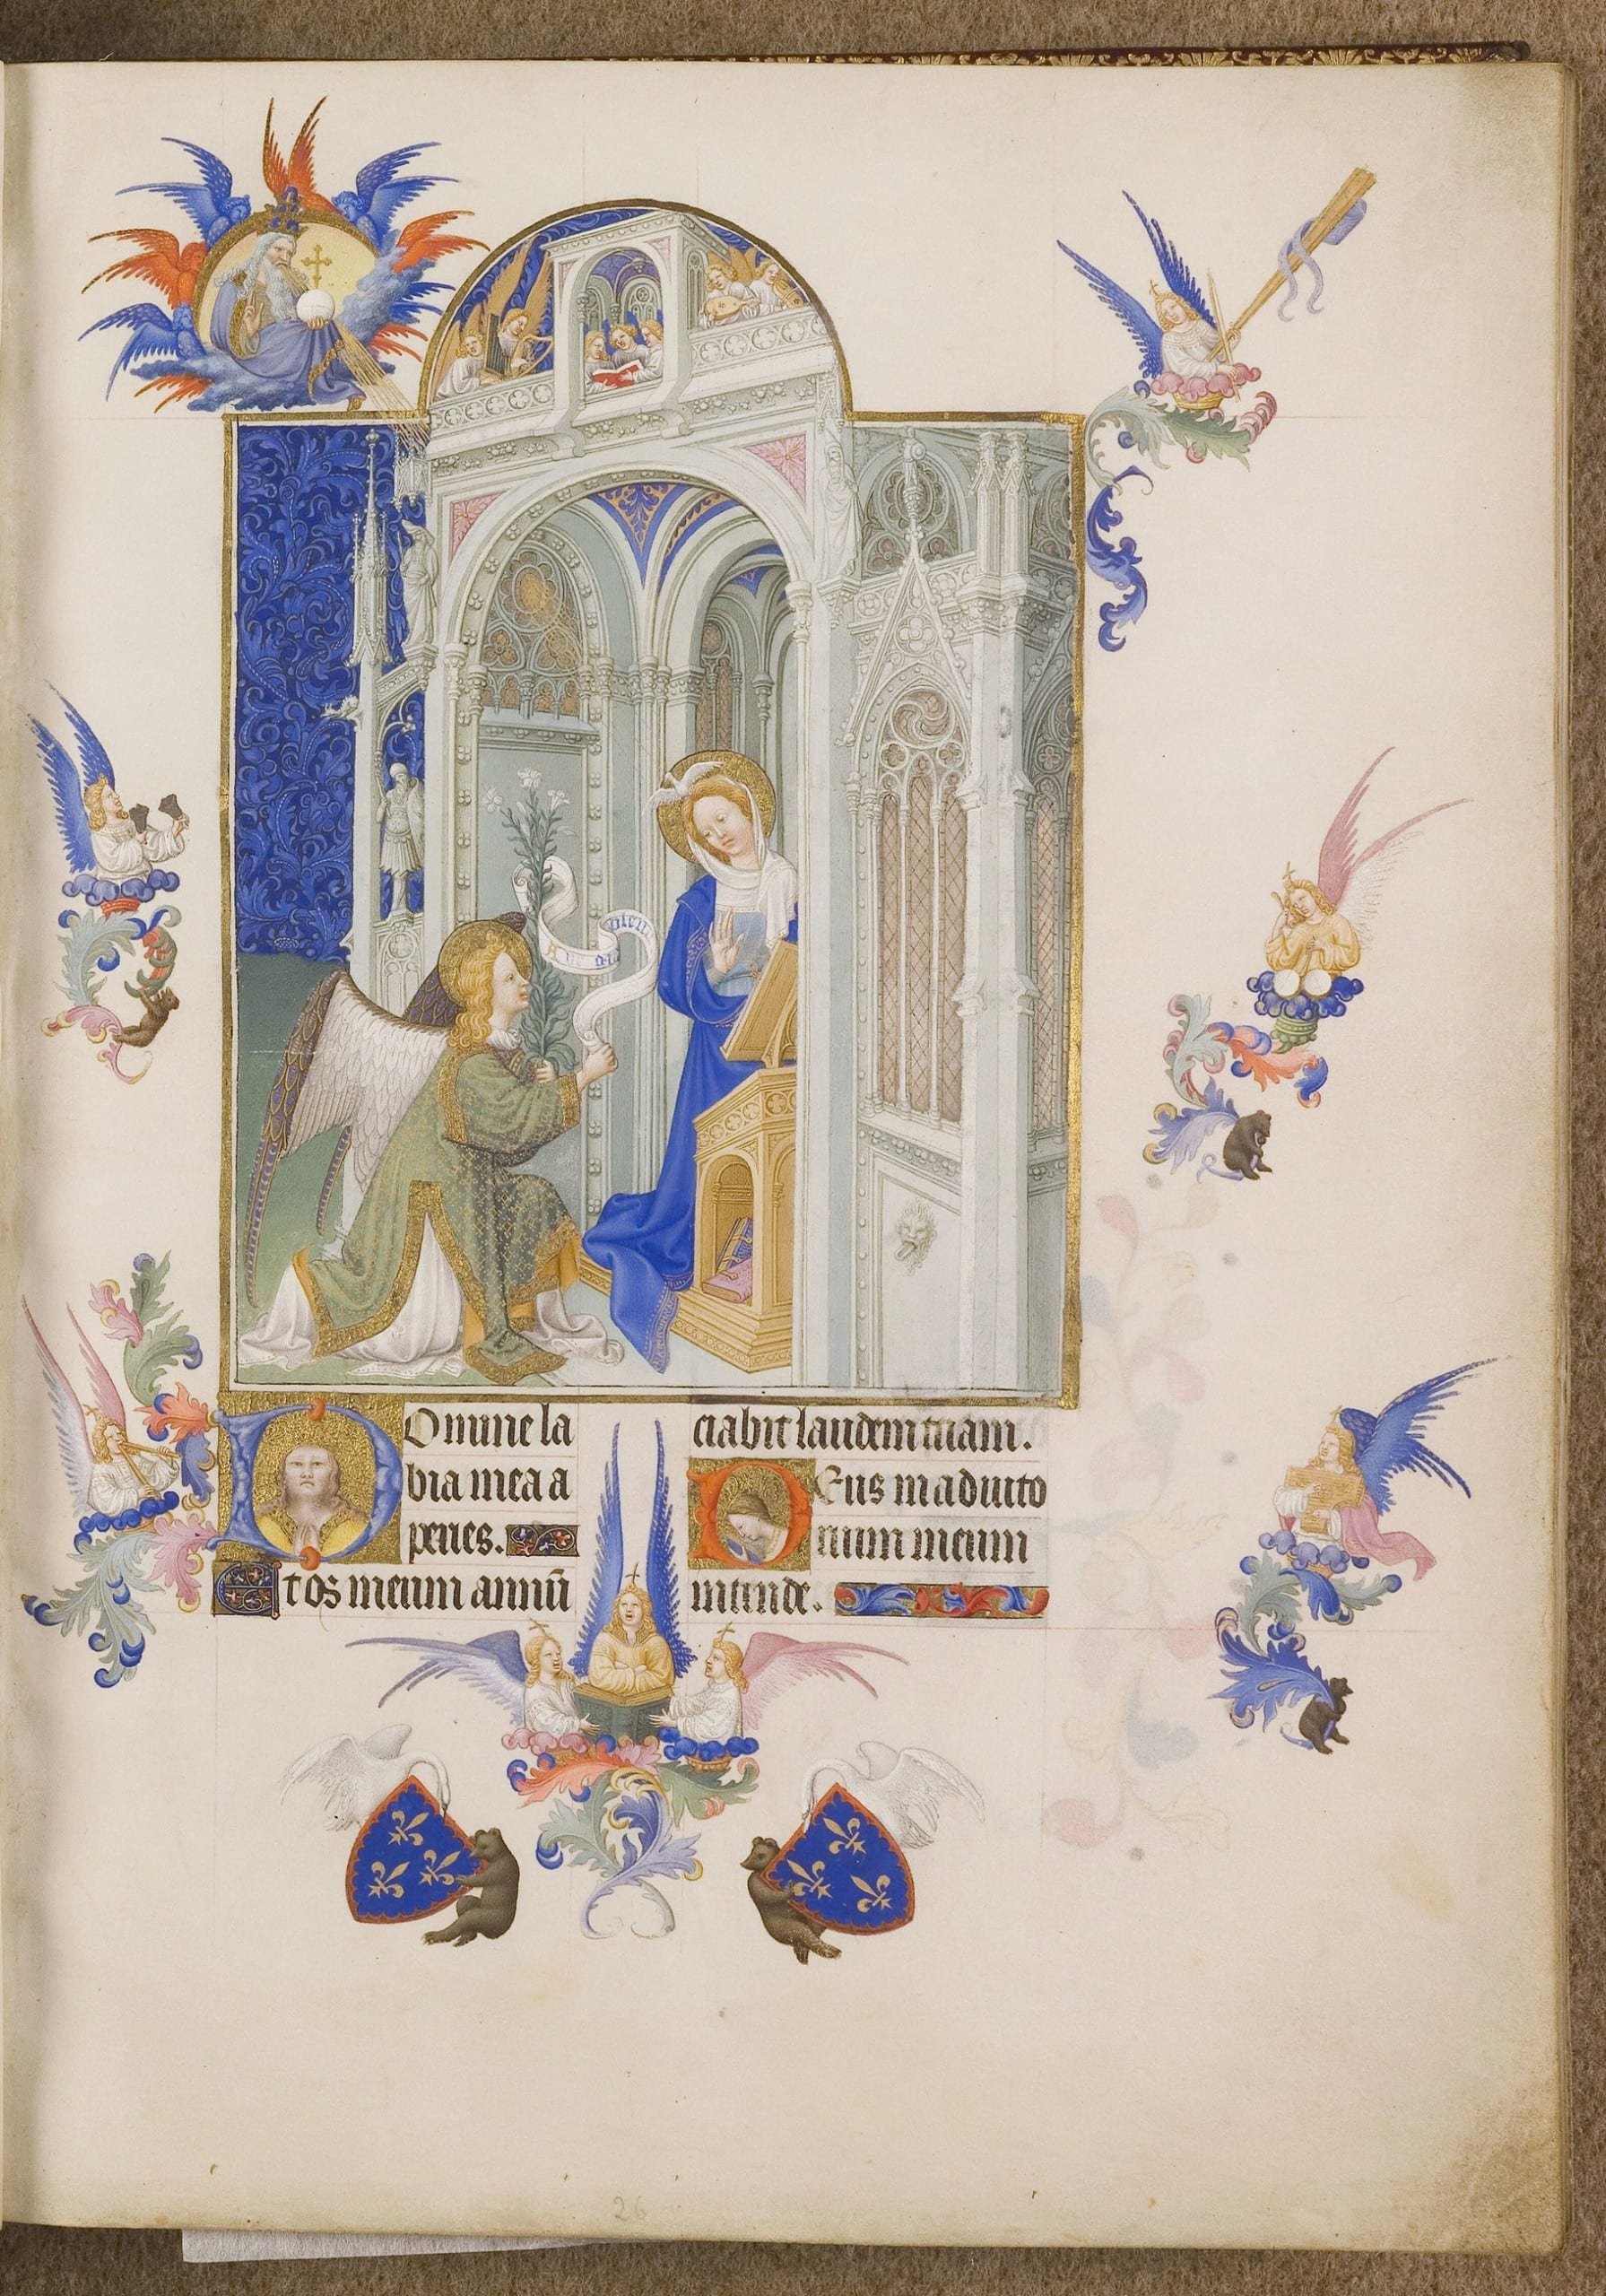 Figure 2. The Limbourg Brothers, the Très Riches Heures, folio 26r (image provided by the CNRS-IRHT)